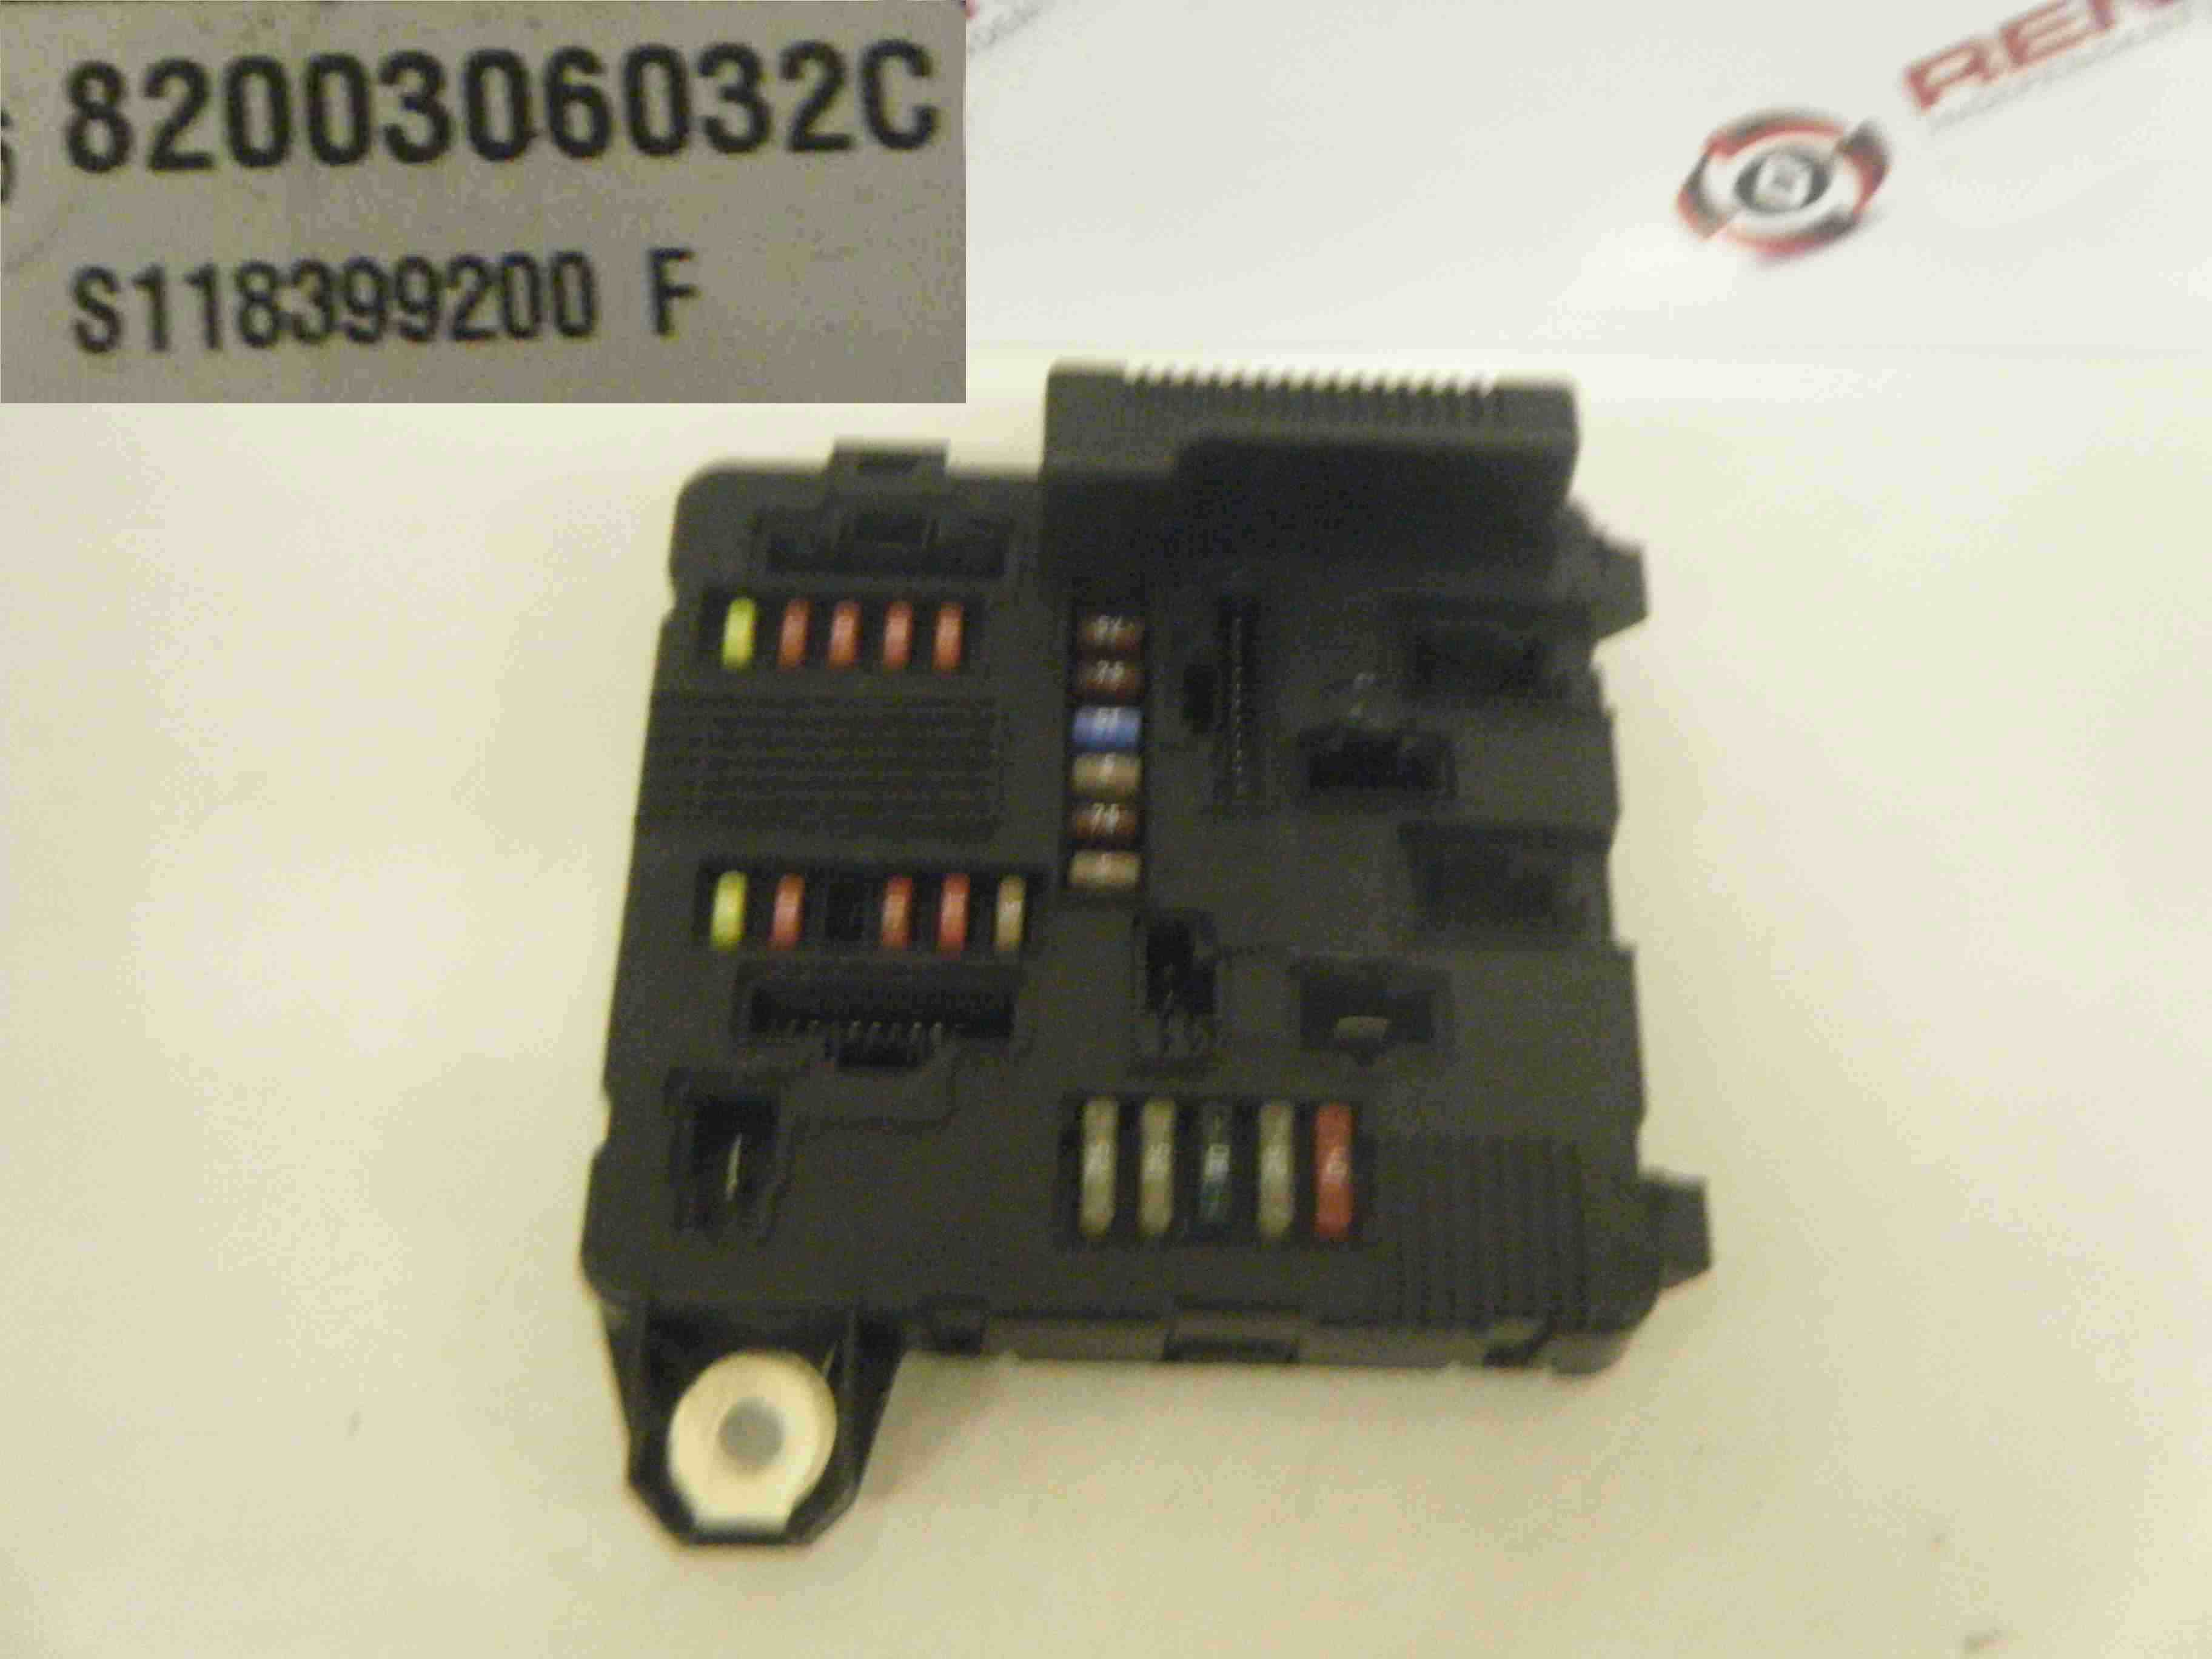 renault megane scenic 2003-2008 fuse box relay bcm ... renault trafic 2003 fuse box